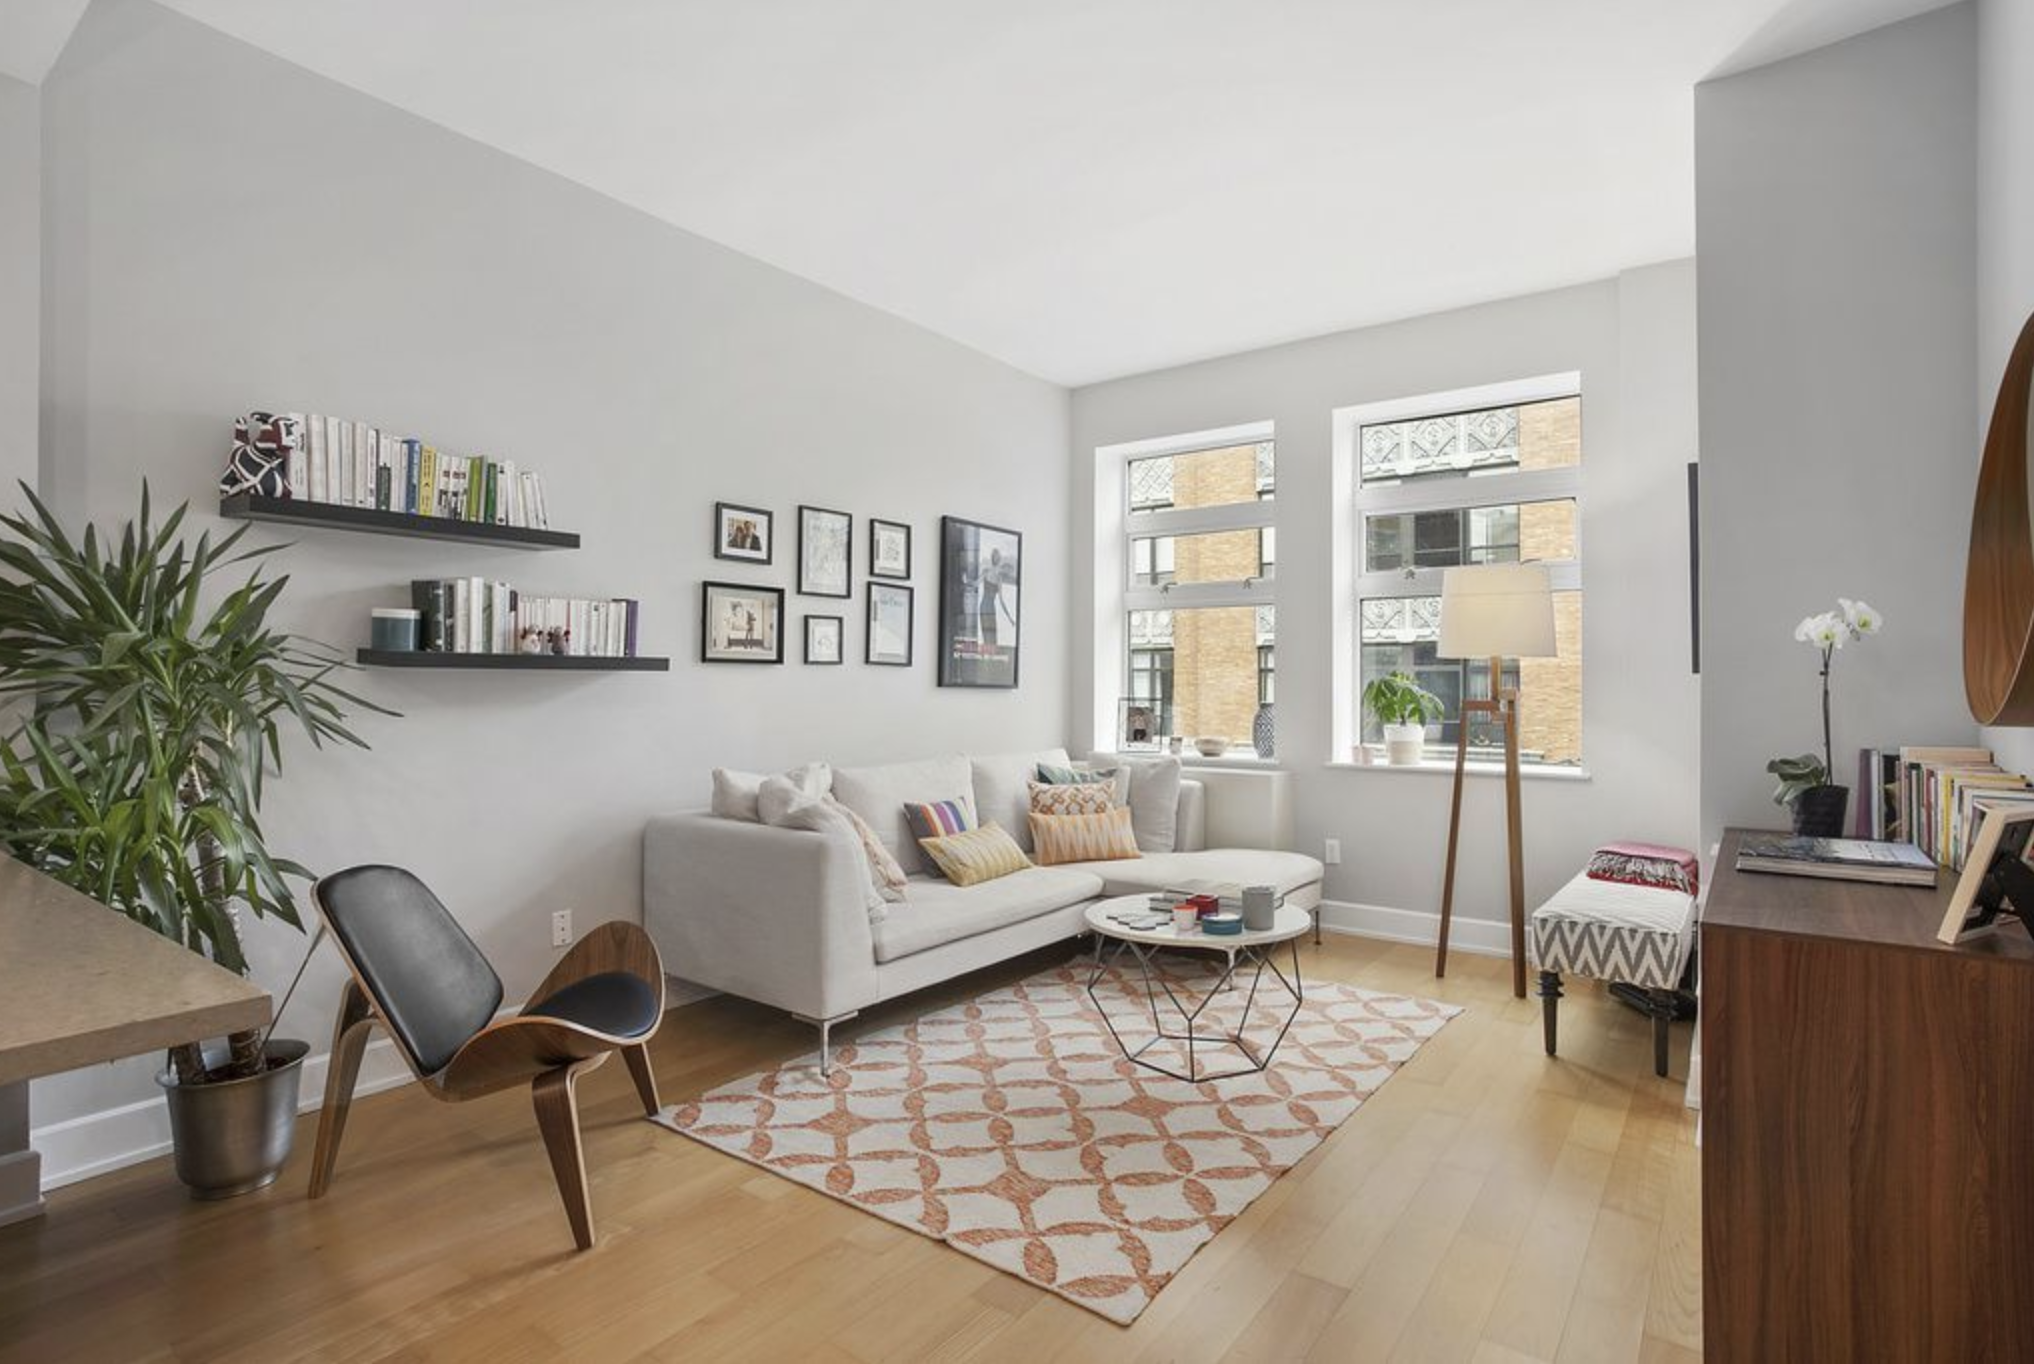 16 Monitor St, #3E - Williamsburg | Brooklyn    1 Bedroom // 1 Bath Days on Market — 15 Sold Date: August 2018 Sold Price:    $725,000